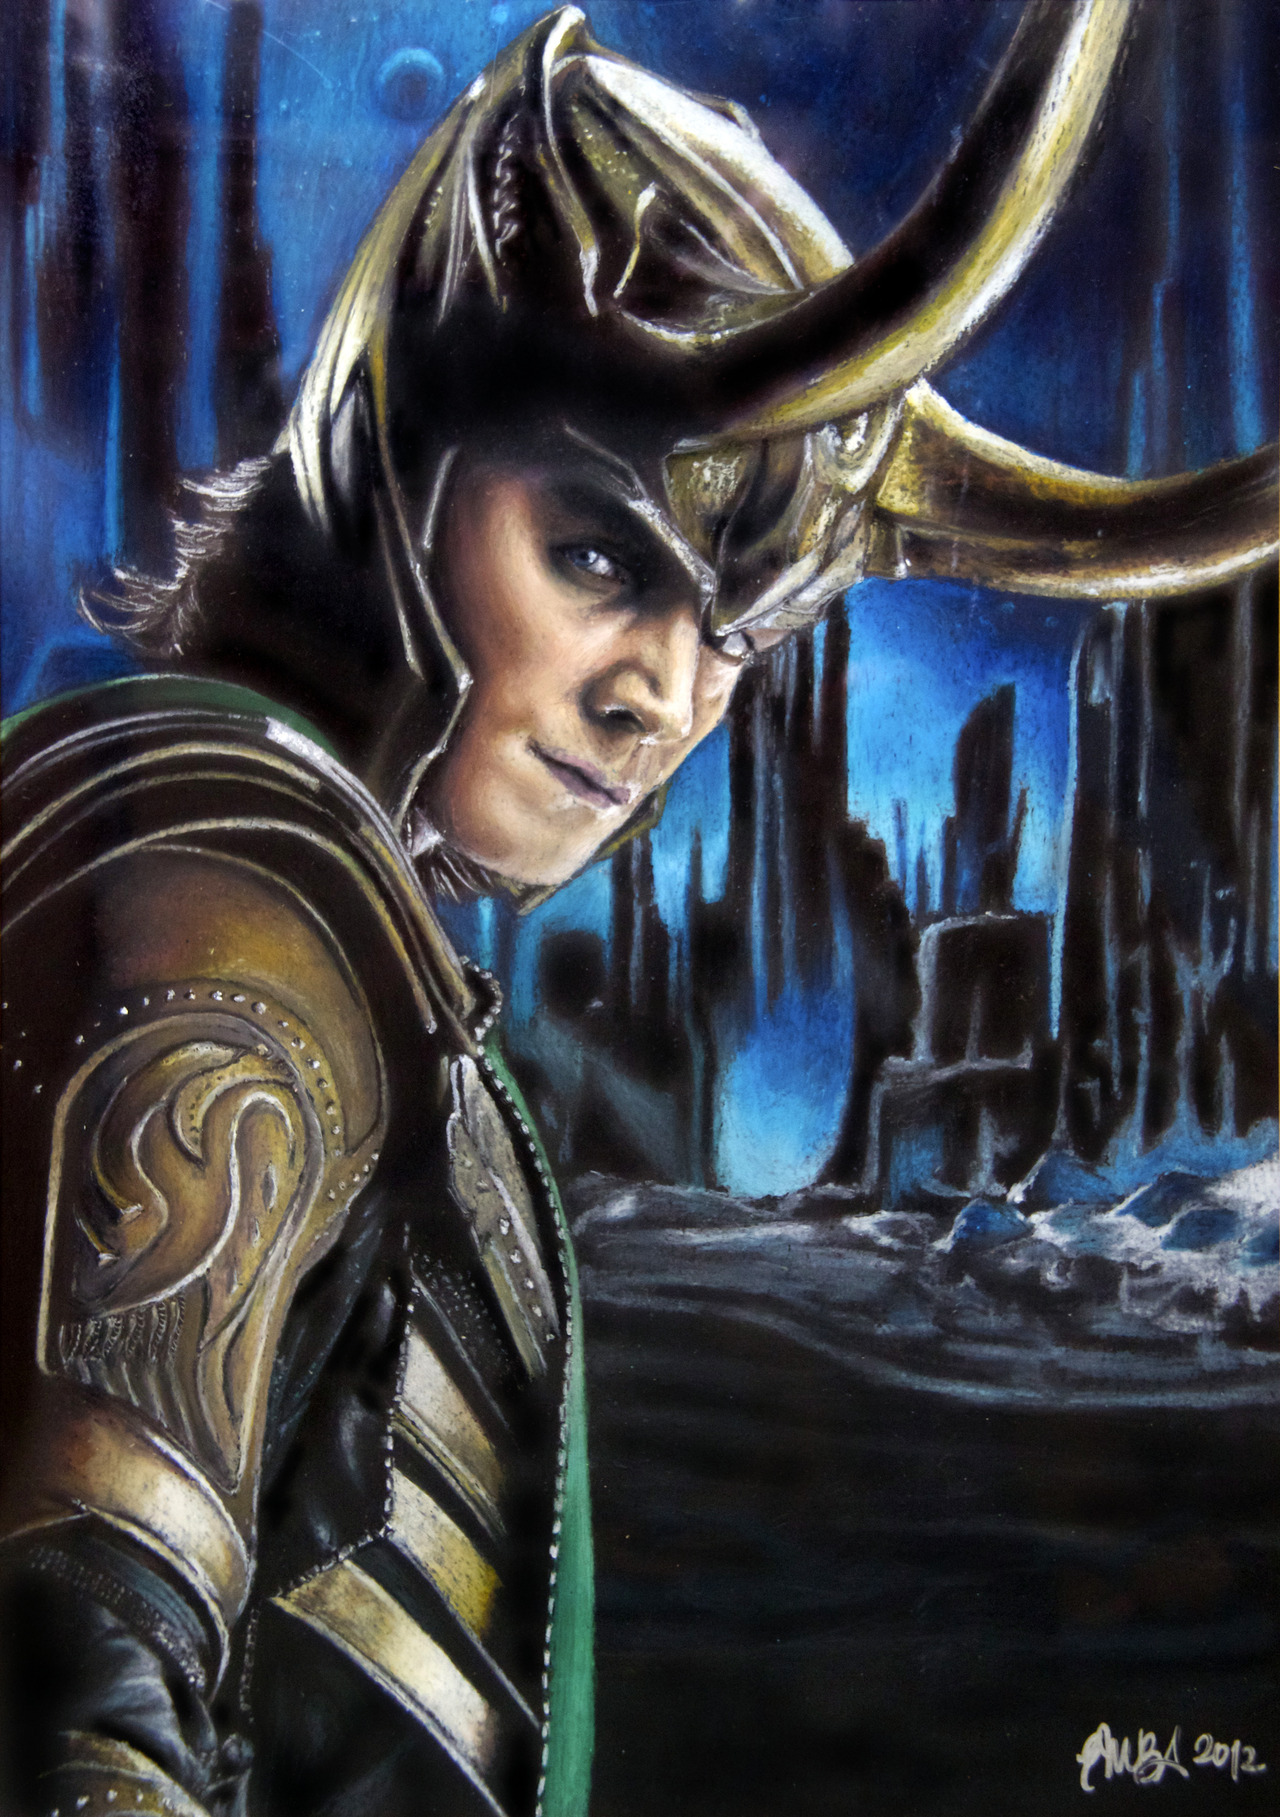 Loki in JotunheimMy first oil pastel portrait, 420mm x 297mm (A3) -> TIME LAPSE VIDEO PLS HELP ME LET TOM HIDDLESTON SEE THIS!Please tweet this to @twhiddleston!Thank you!! :) September 2012